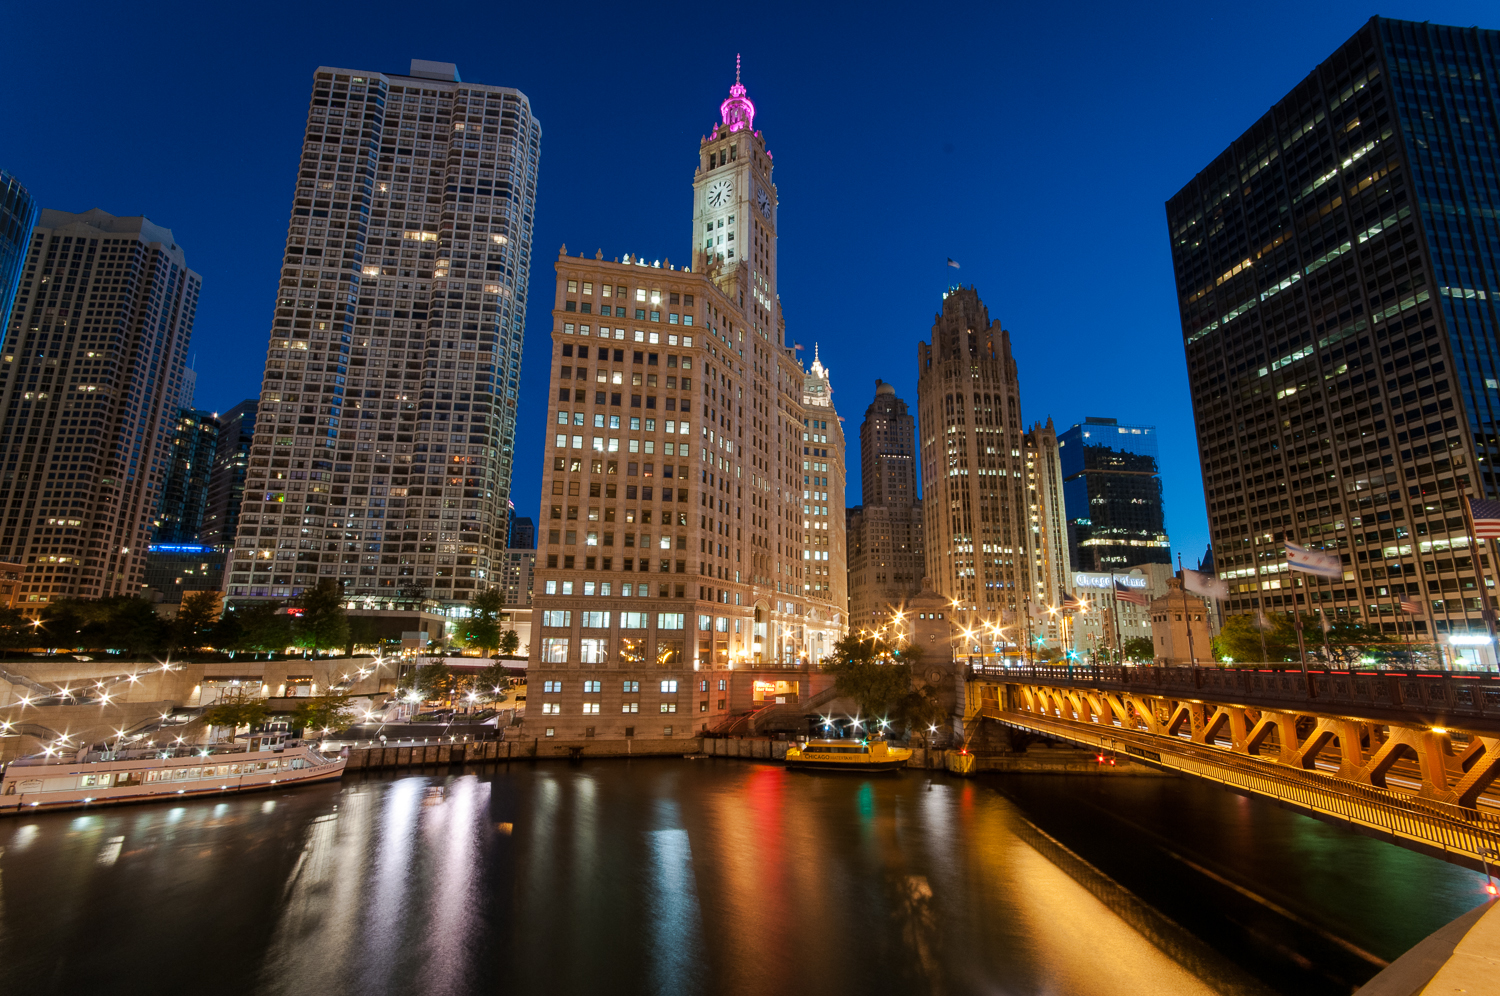 Michigan Avenue Bridge and Chicago River